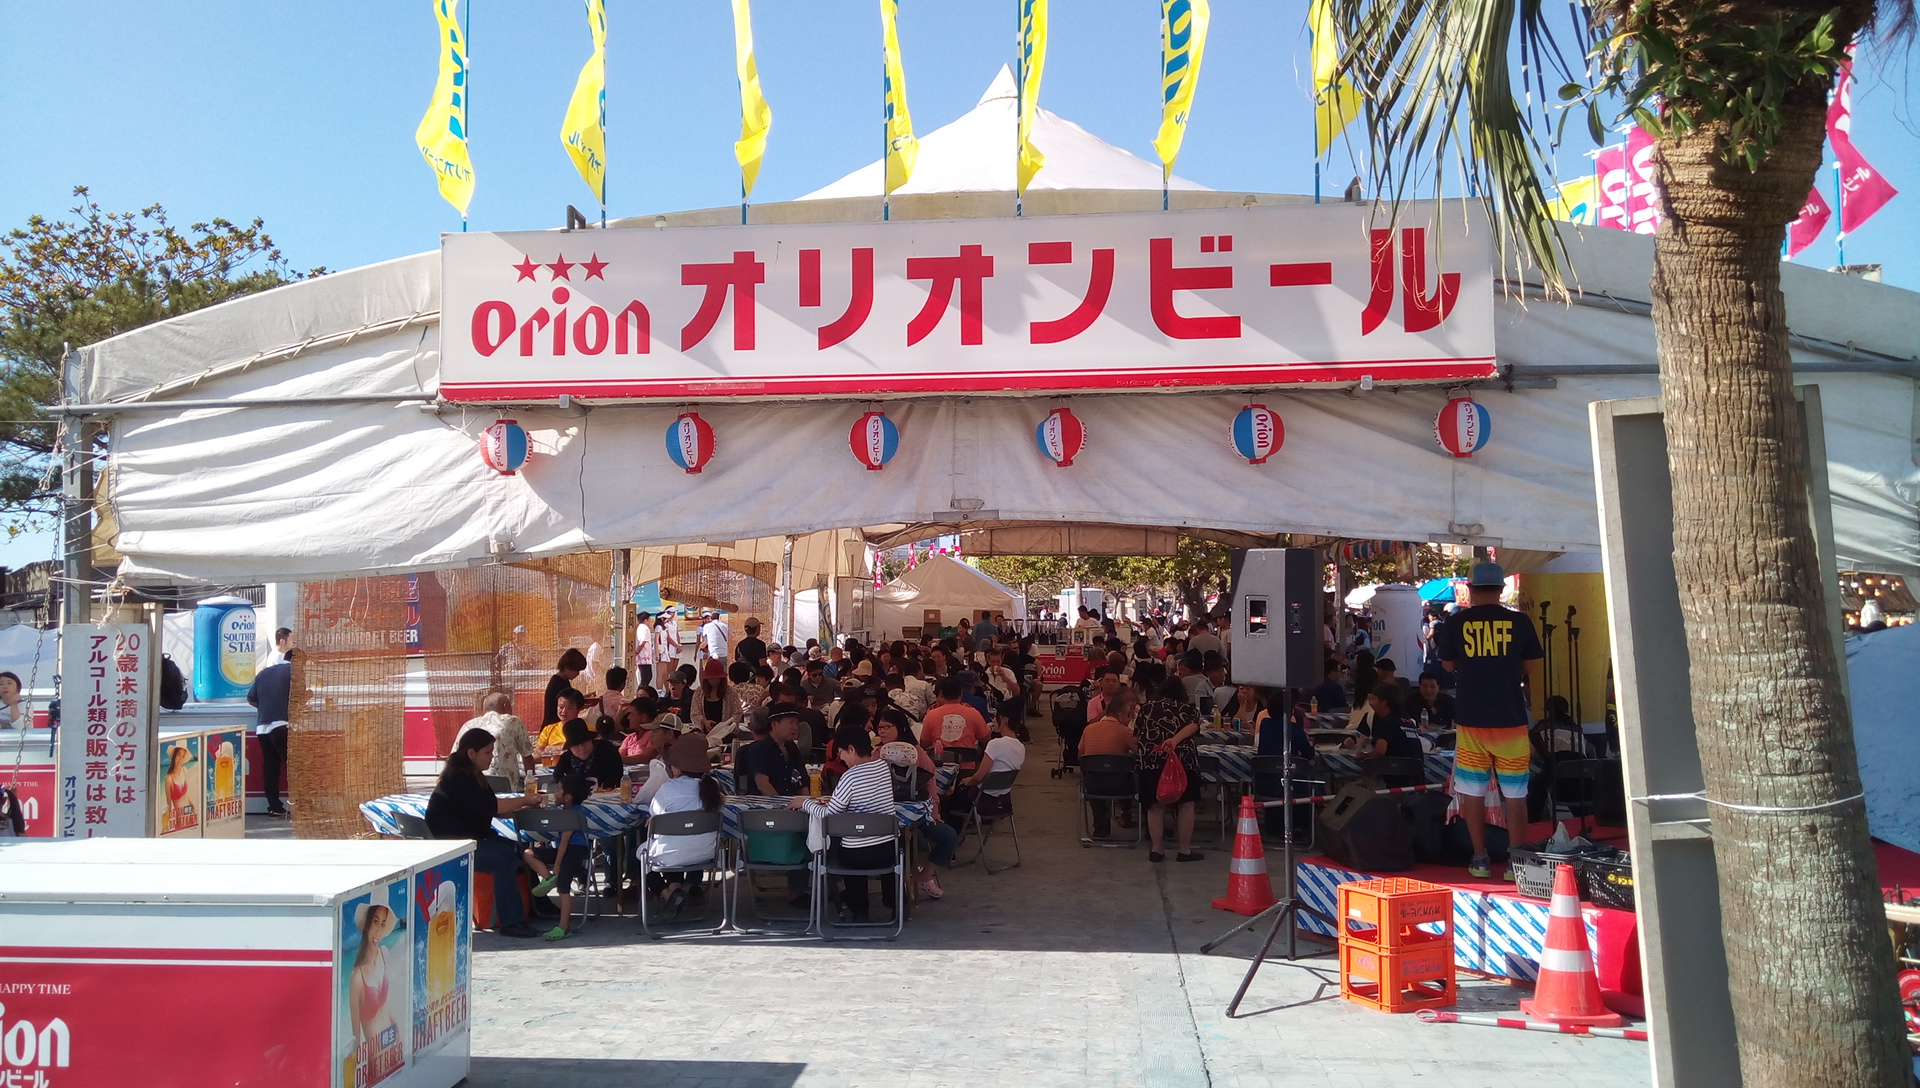 the beer garden of Orion beer